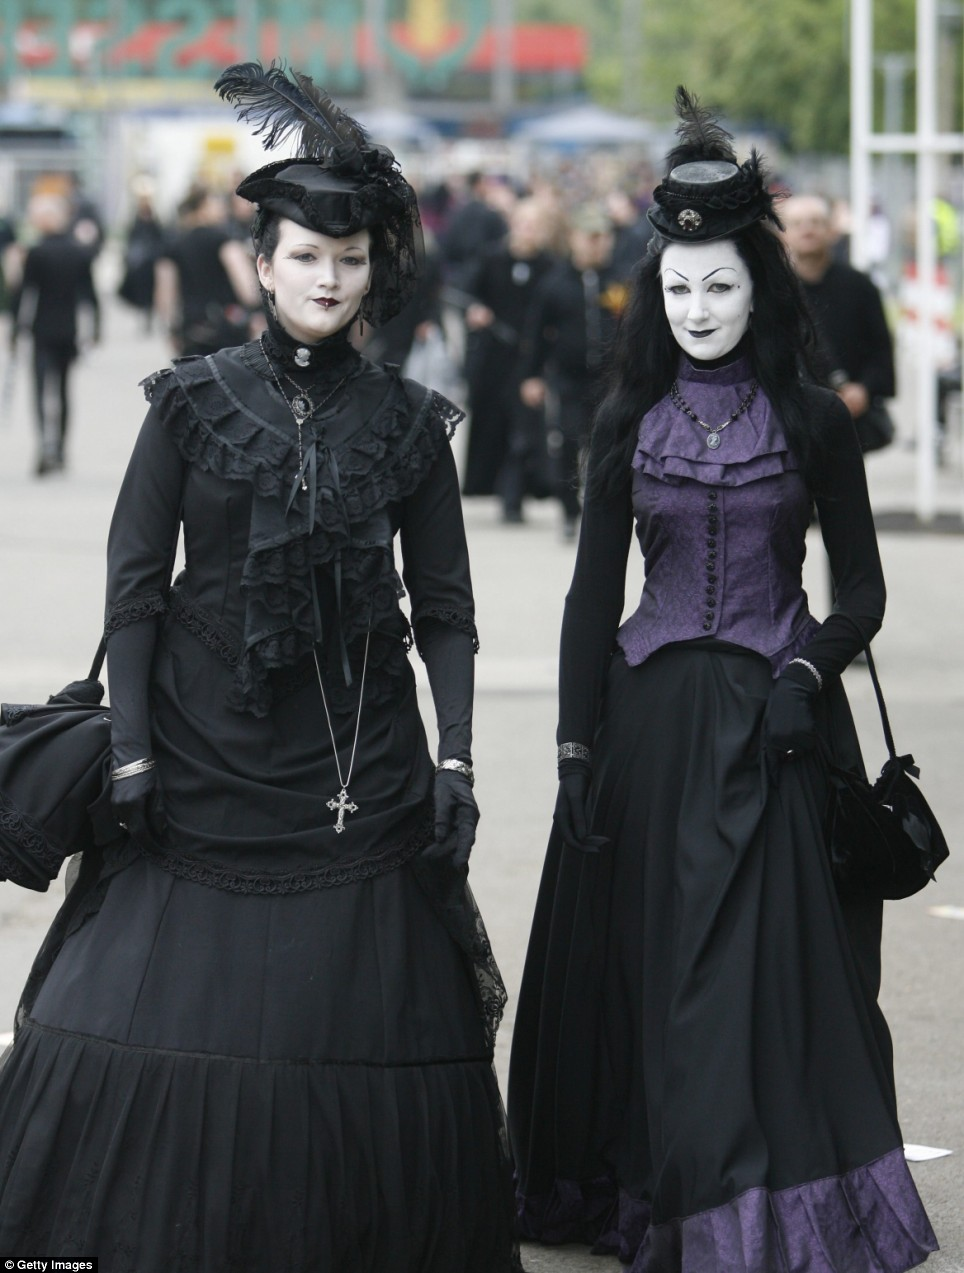 The Fashion Vampyre: Industrial Goth…A Social ... Gothic Vampire